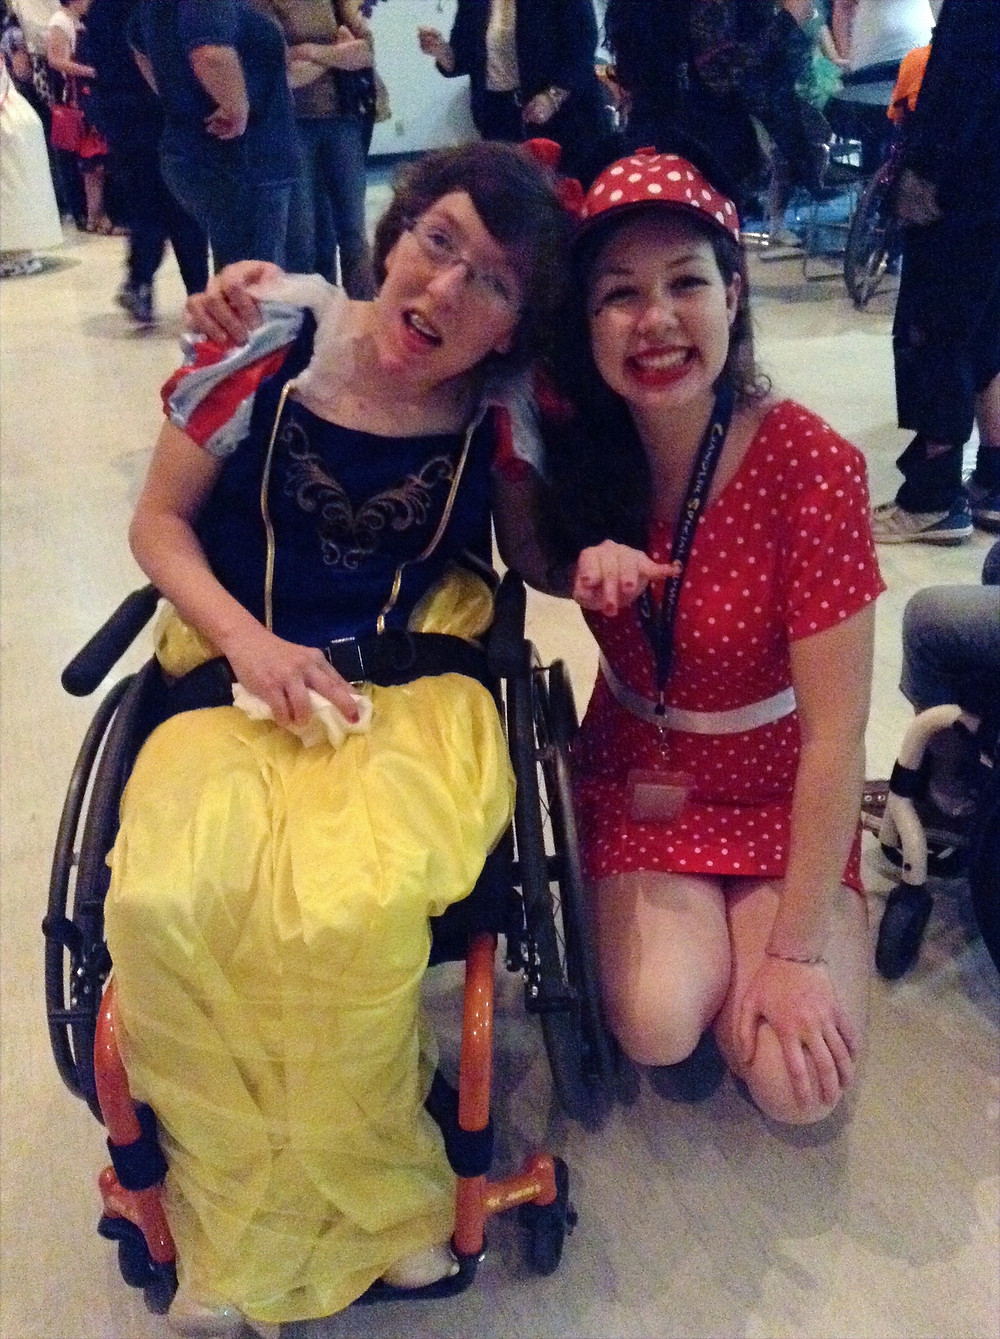 Morgan is wearing a Snow White outfit while sitting in her wheelchair. Caitlin is kneeling next to her wearing a Minnie Mouse outfit.